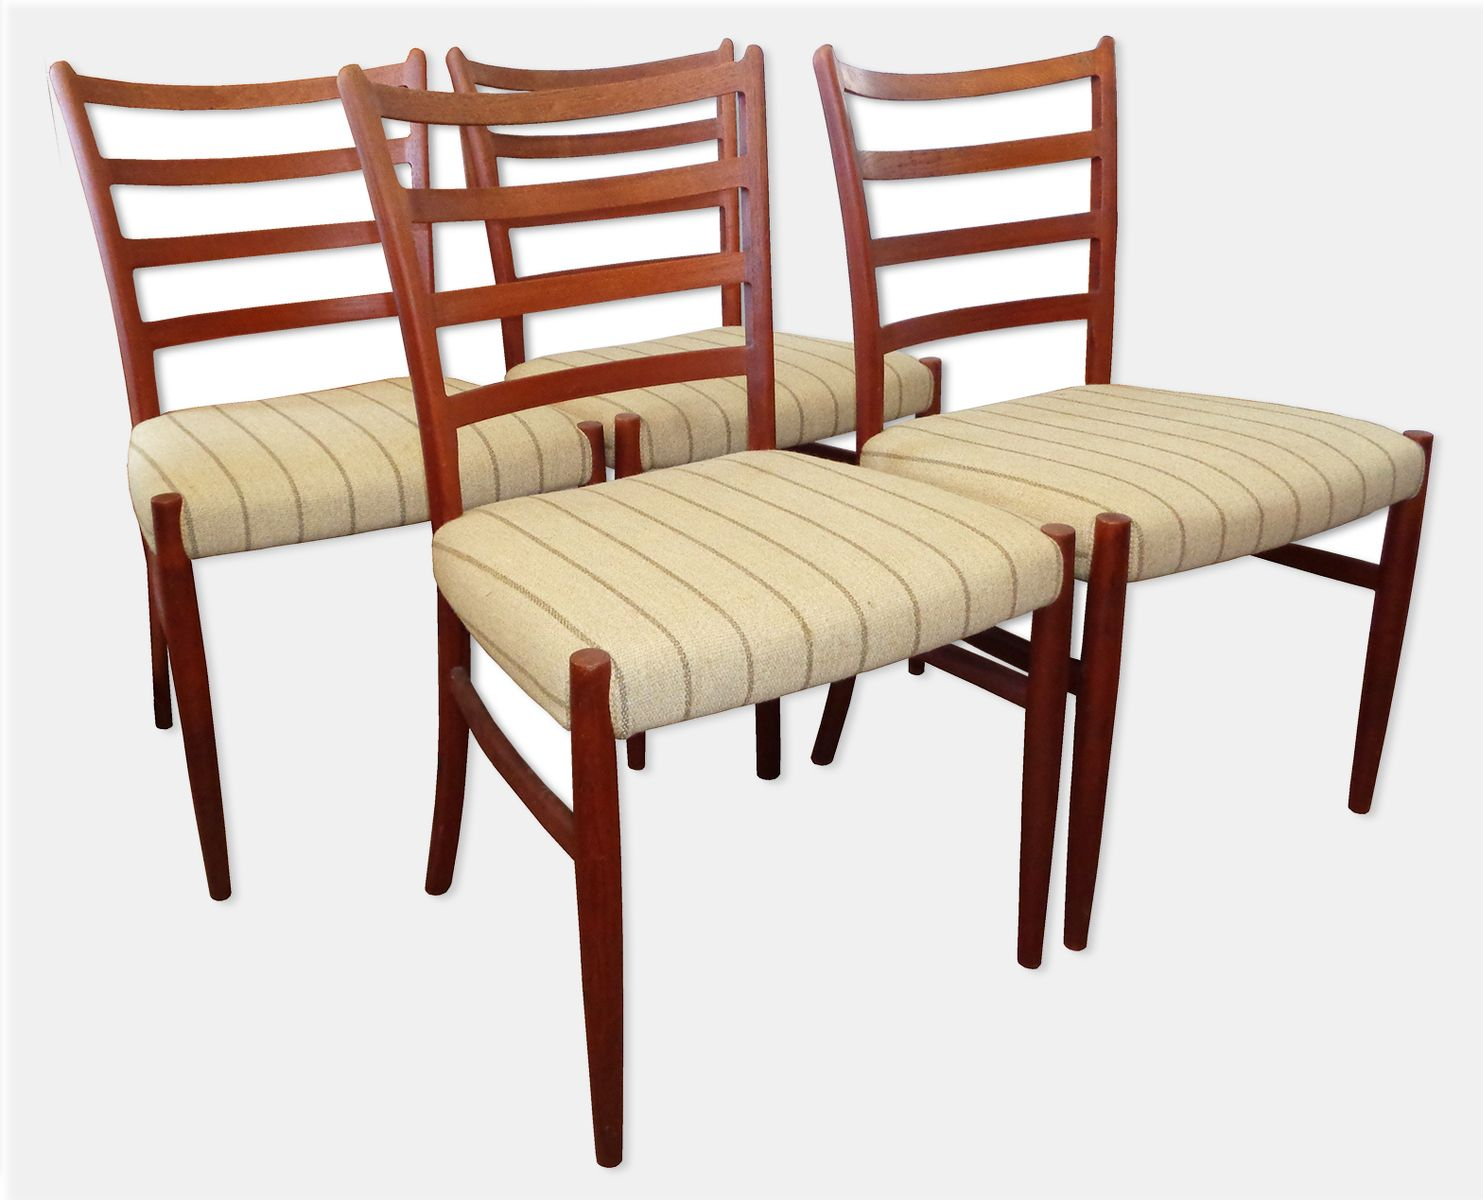 Vintage Teak Dining Chairs By Johannes Andersen For Sva